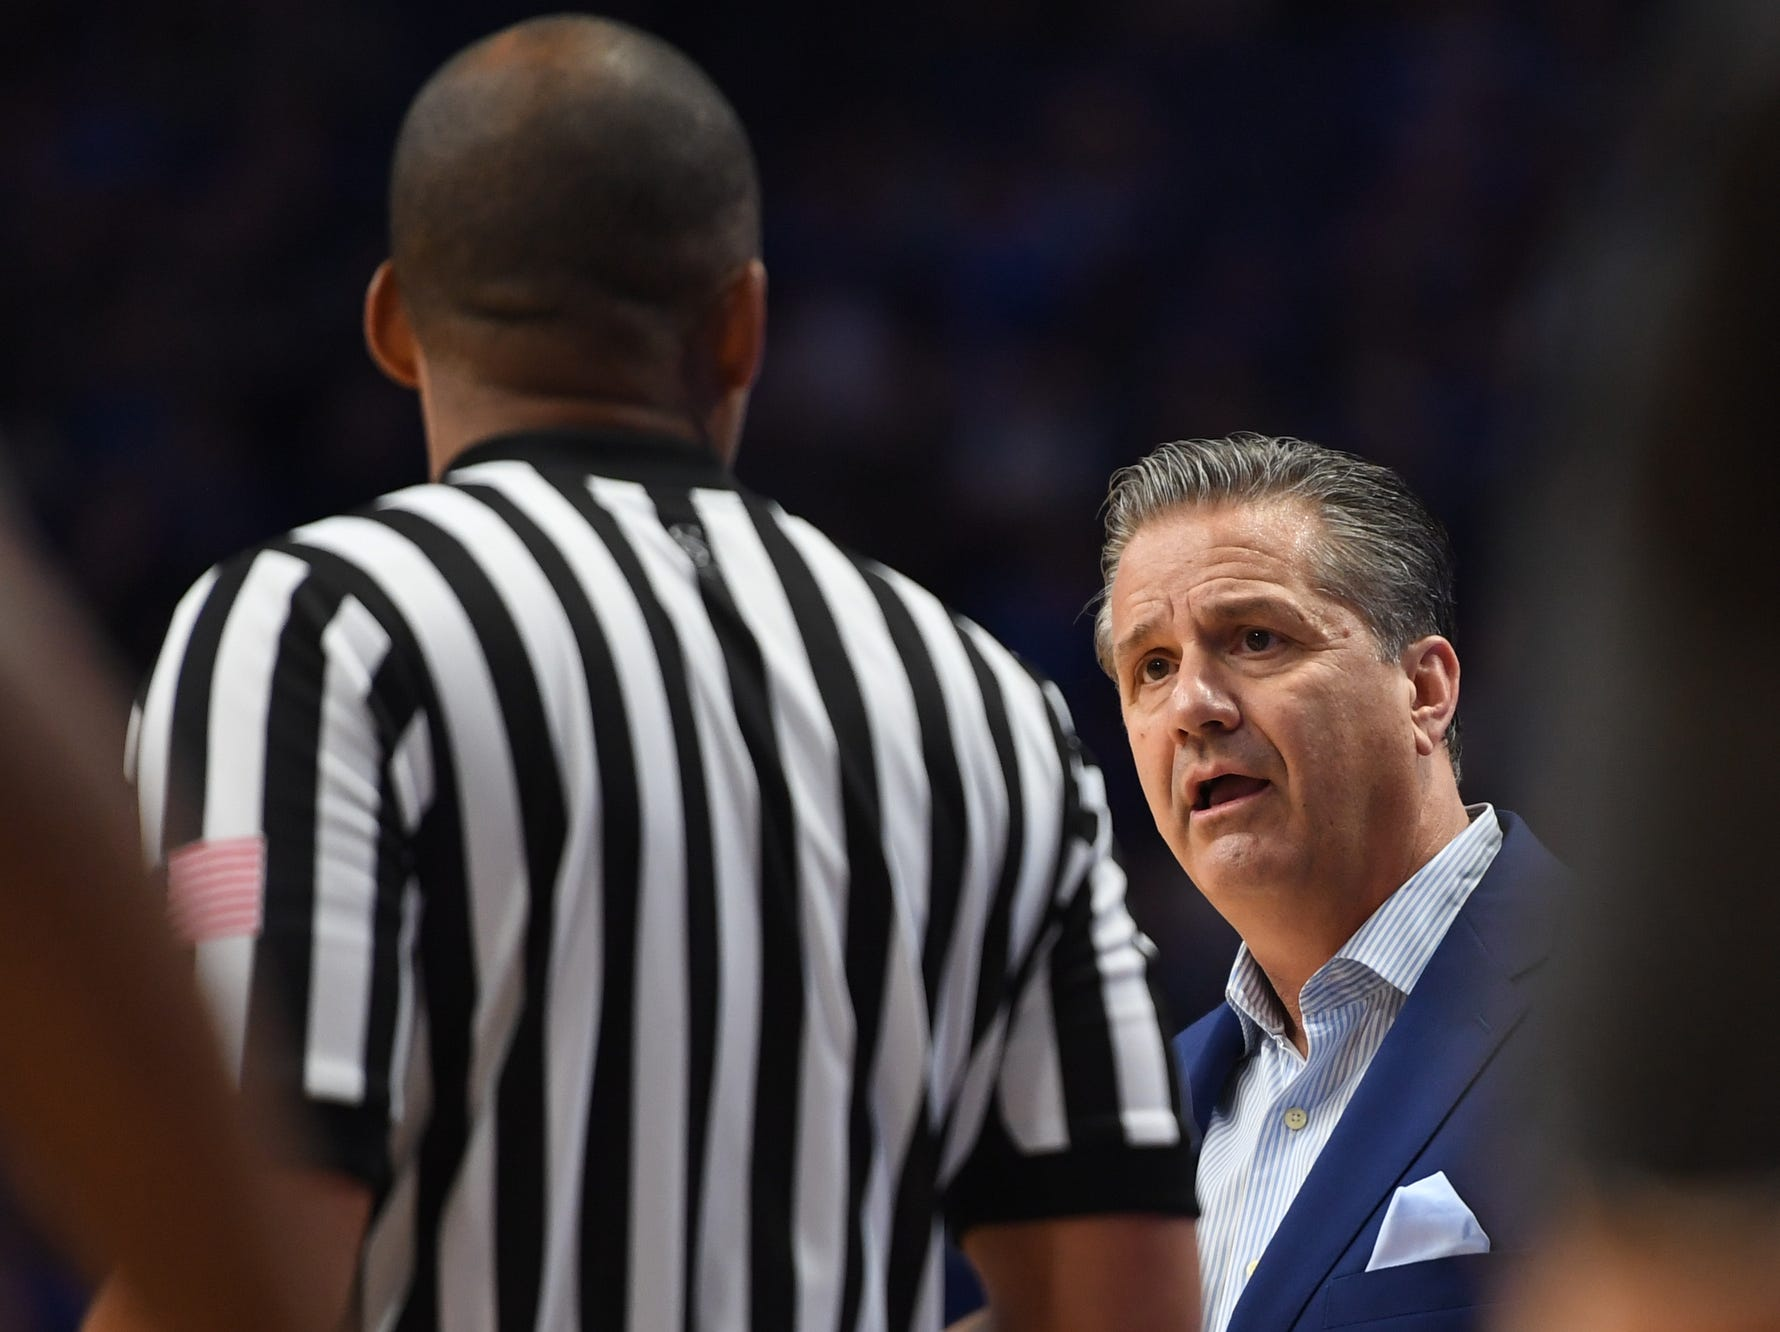 UK head coach John Calipari talks with an official during the University of Kentucky basketball game against Indiana University of Pennsylvania at Rupp Arena on Friday, Nov. 2, 2018.